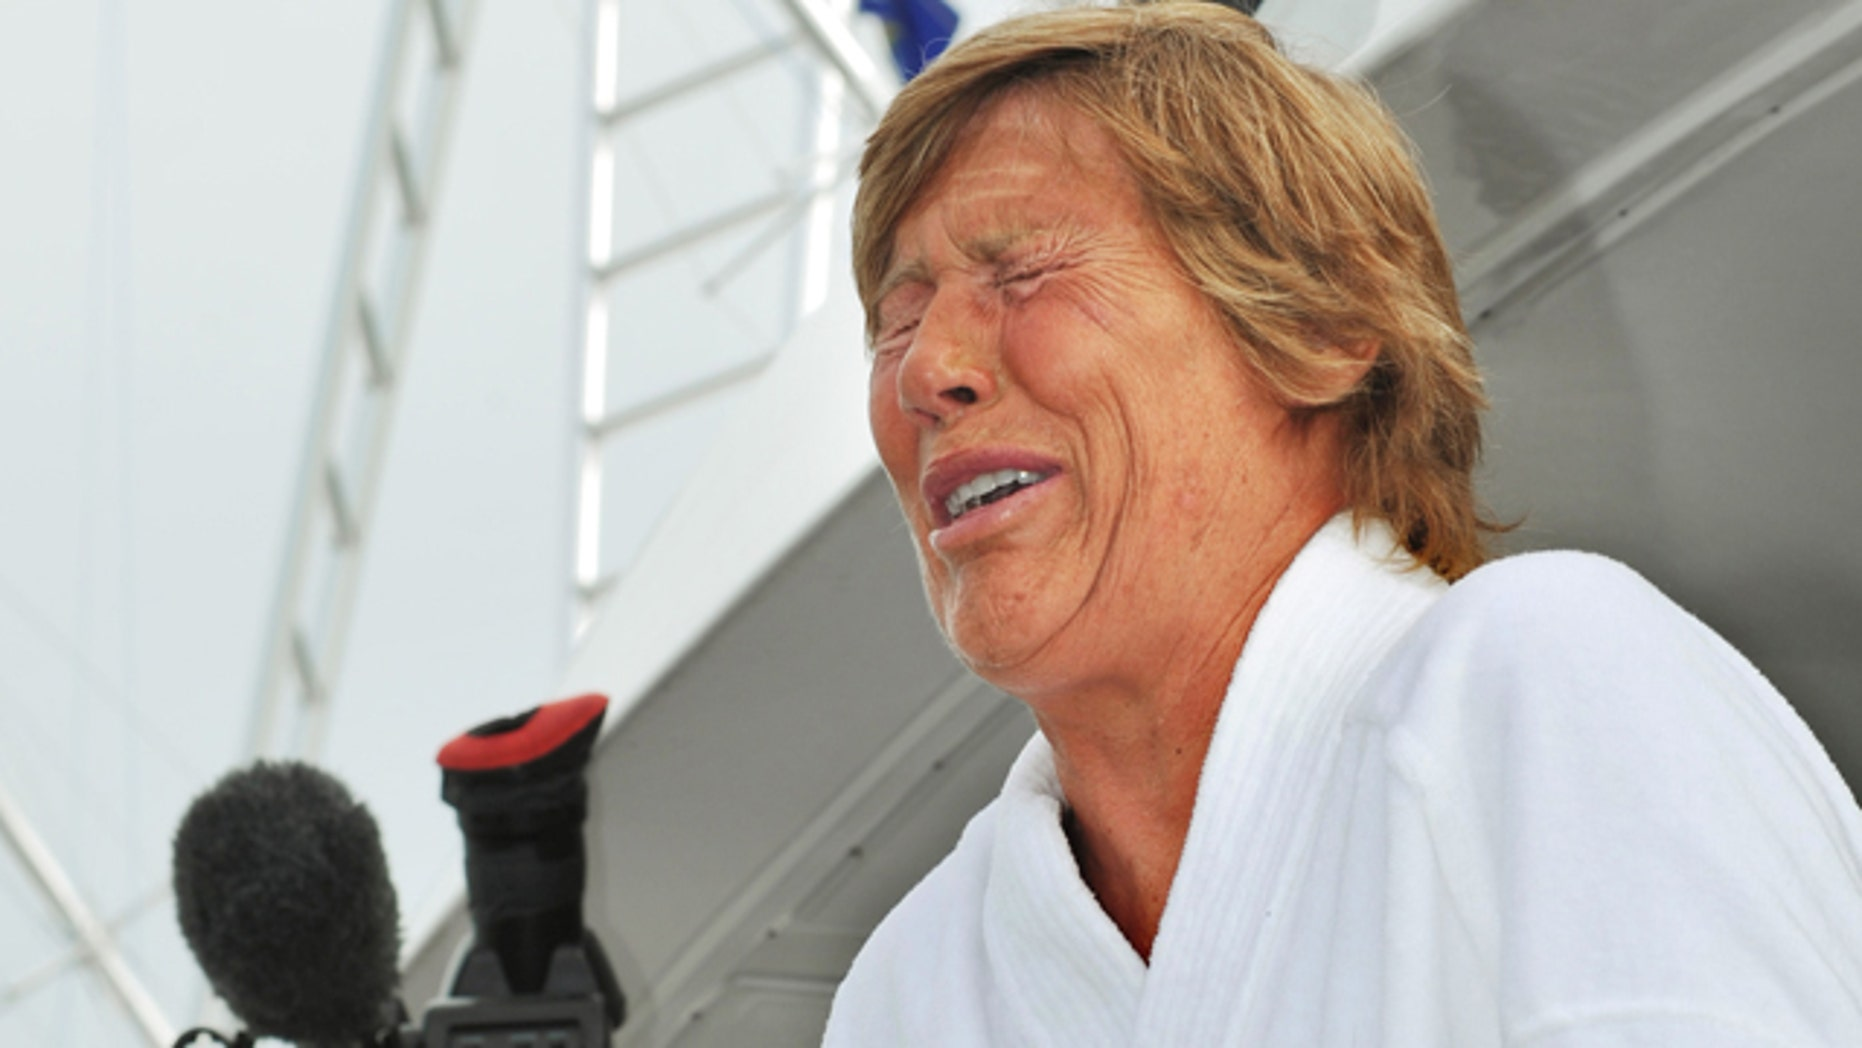 Aug. 9: Diana Nyad cries as she speaks to reporters and fans after arriving back in Key West.